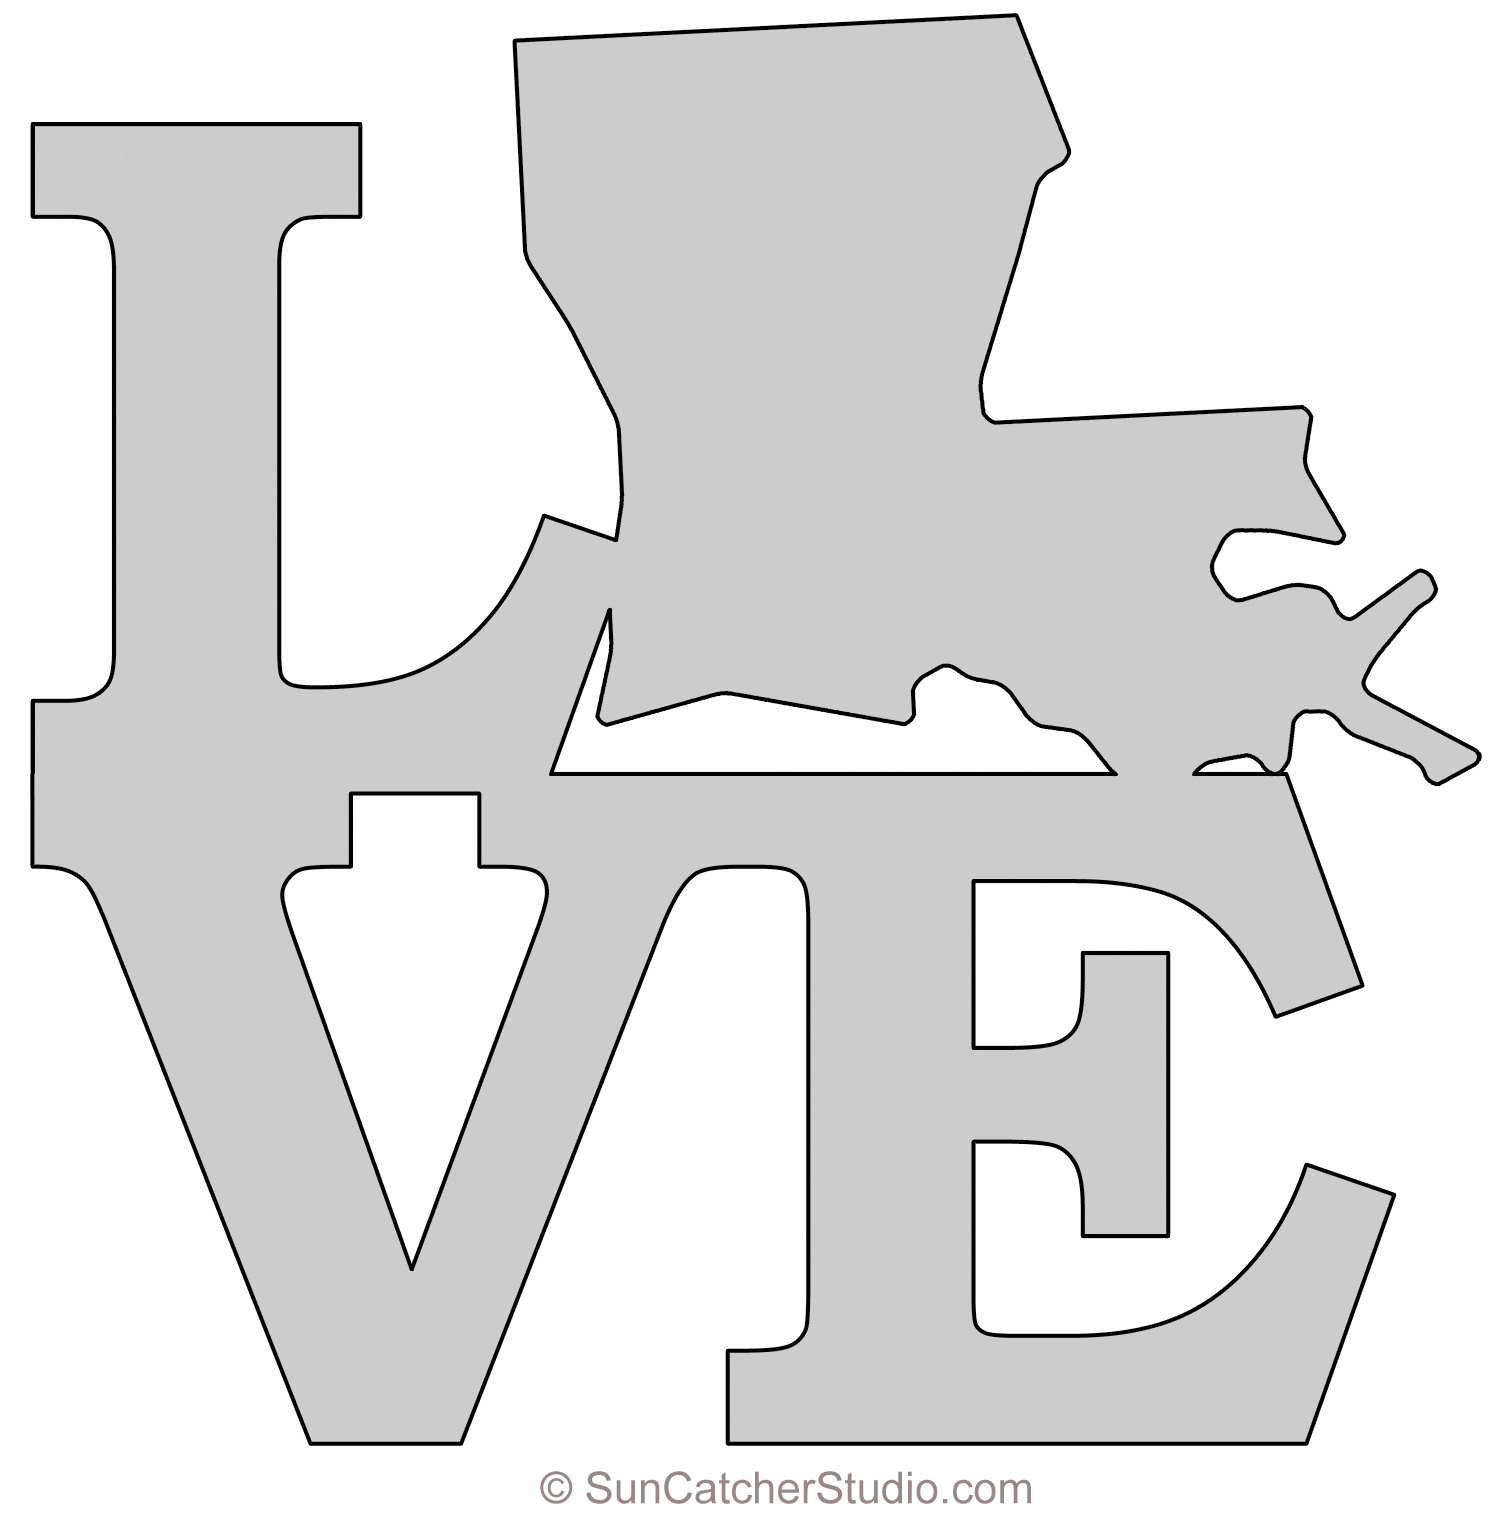 Louisiana LOVE map outline scroll saw pattern shape state stencil